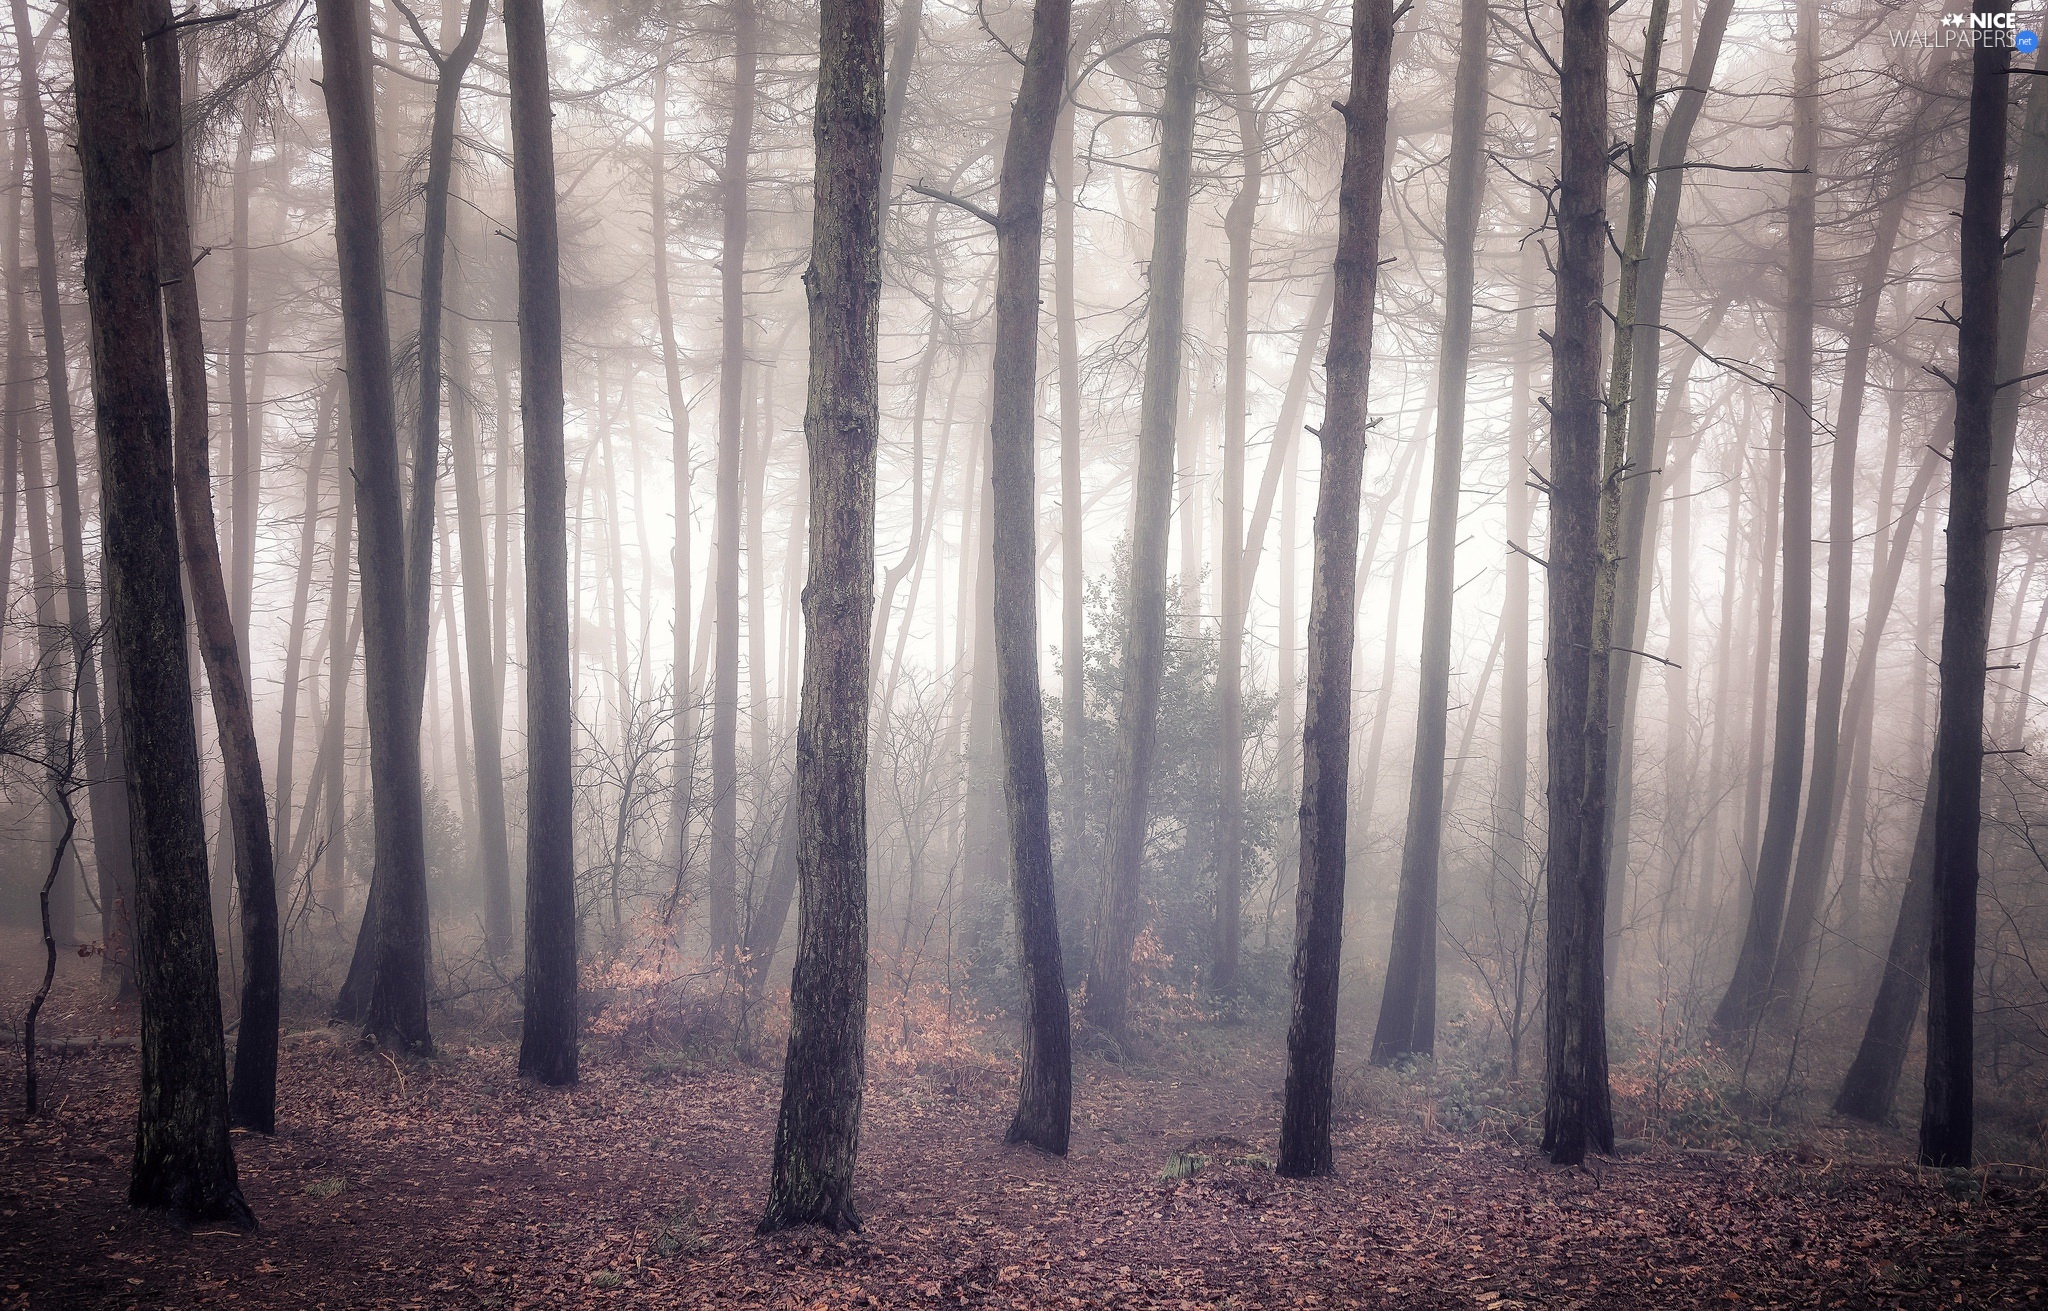 trees, forest, Fog, autumn, viewes, leafless